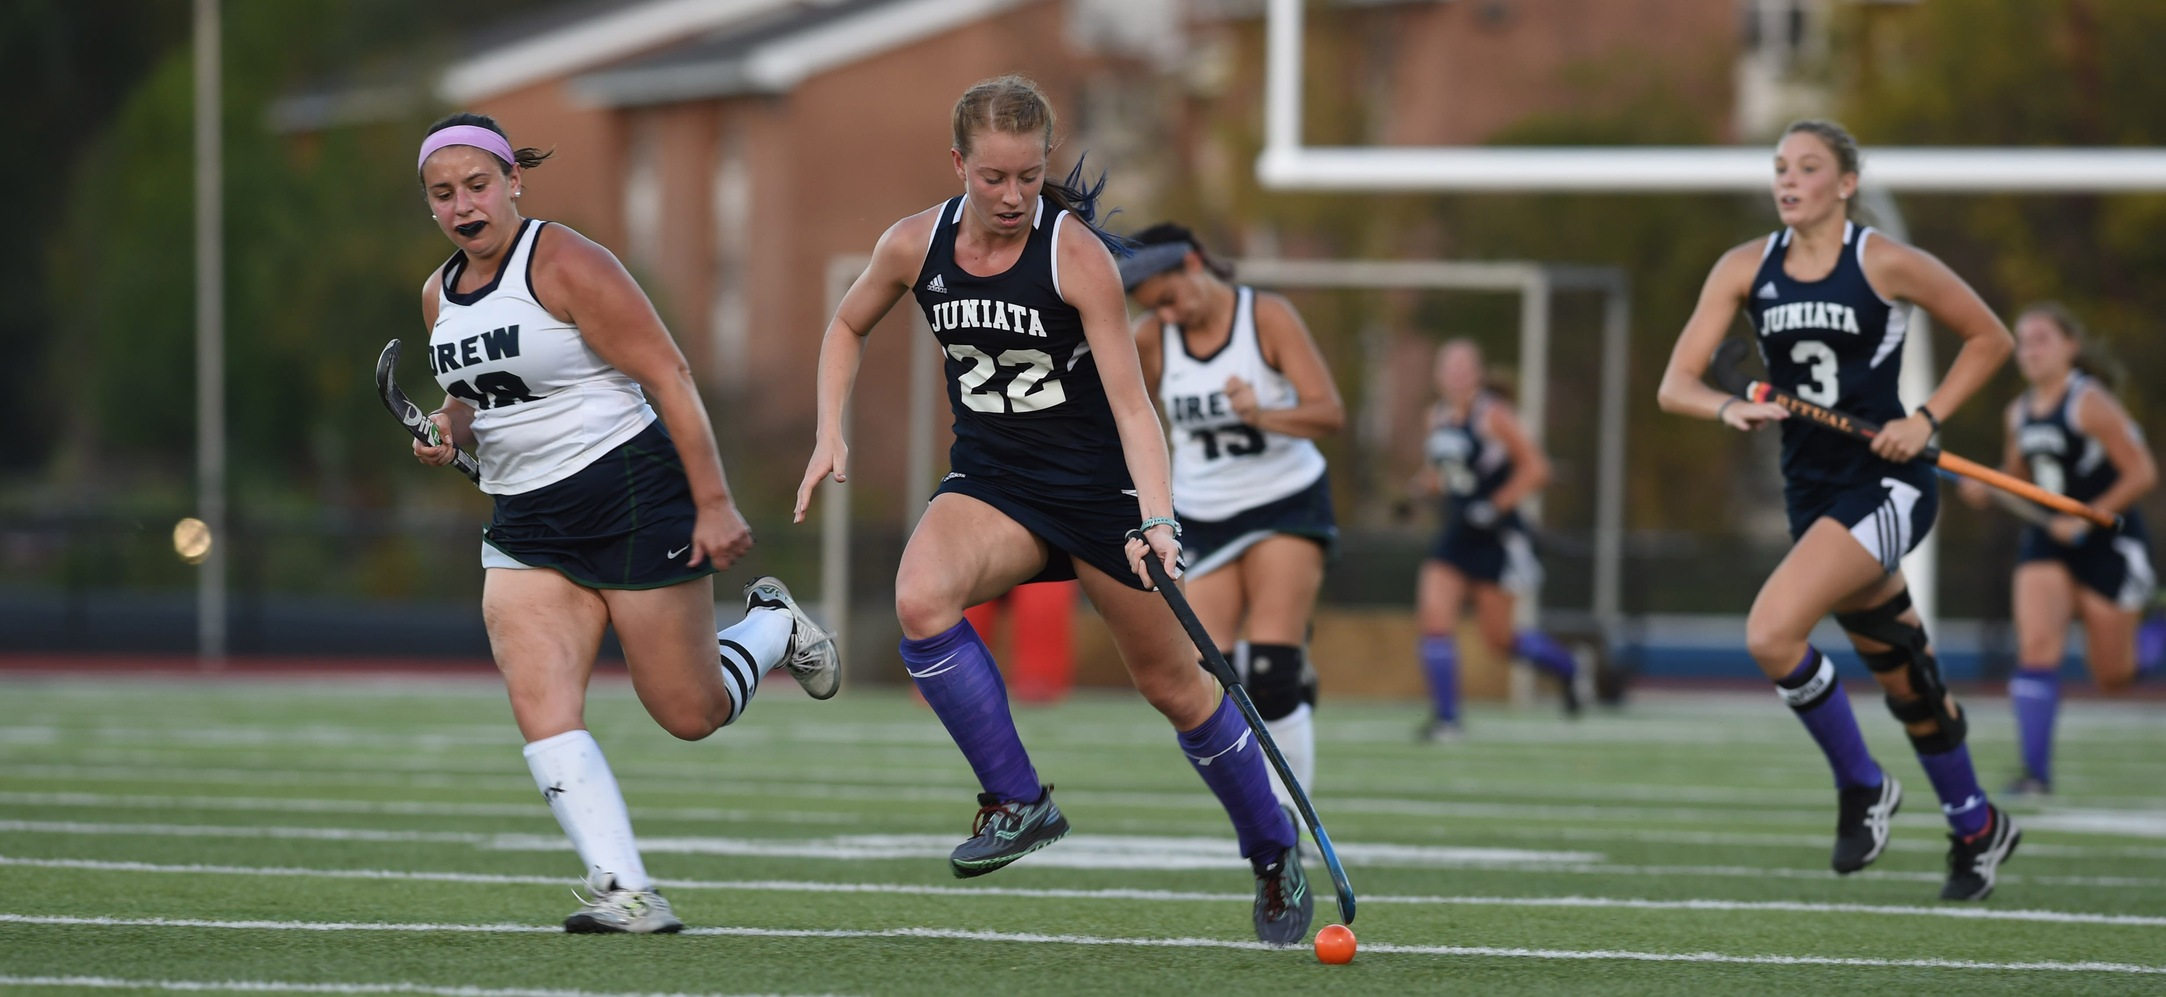 Rebecca Waite tallied two goals in the Eagles 3-2 overtime win against Lebanon Valley.